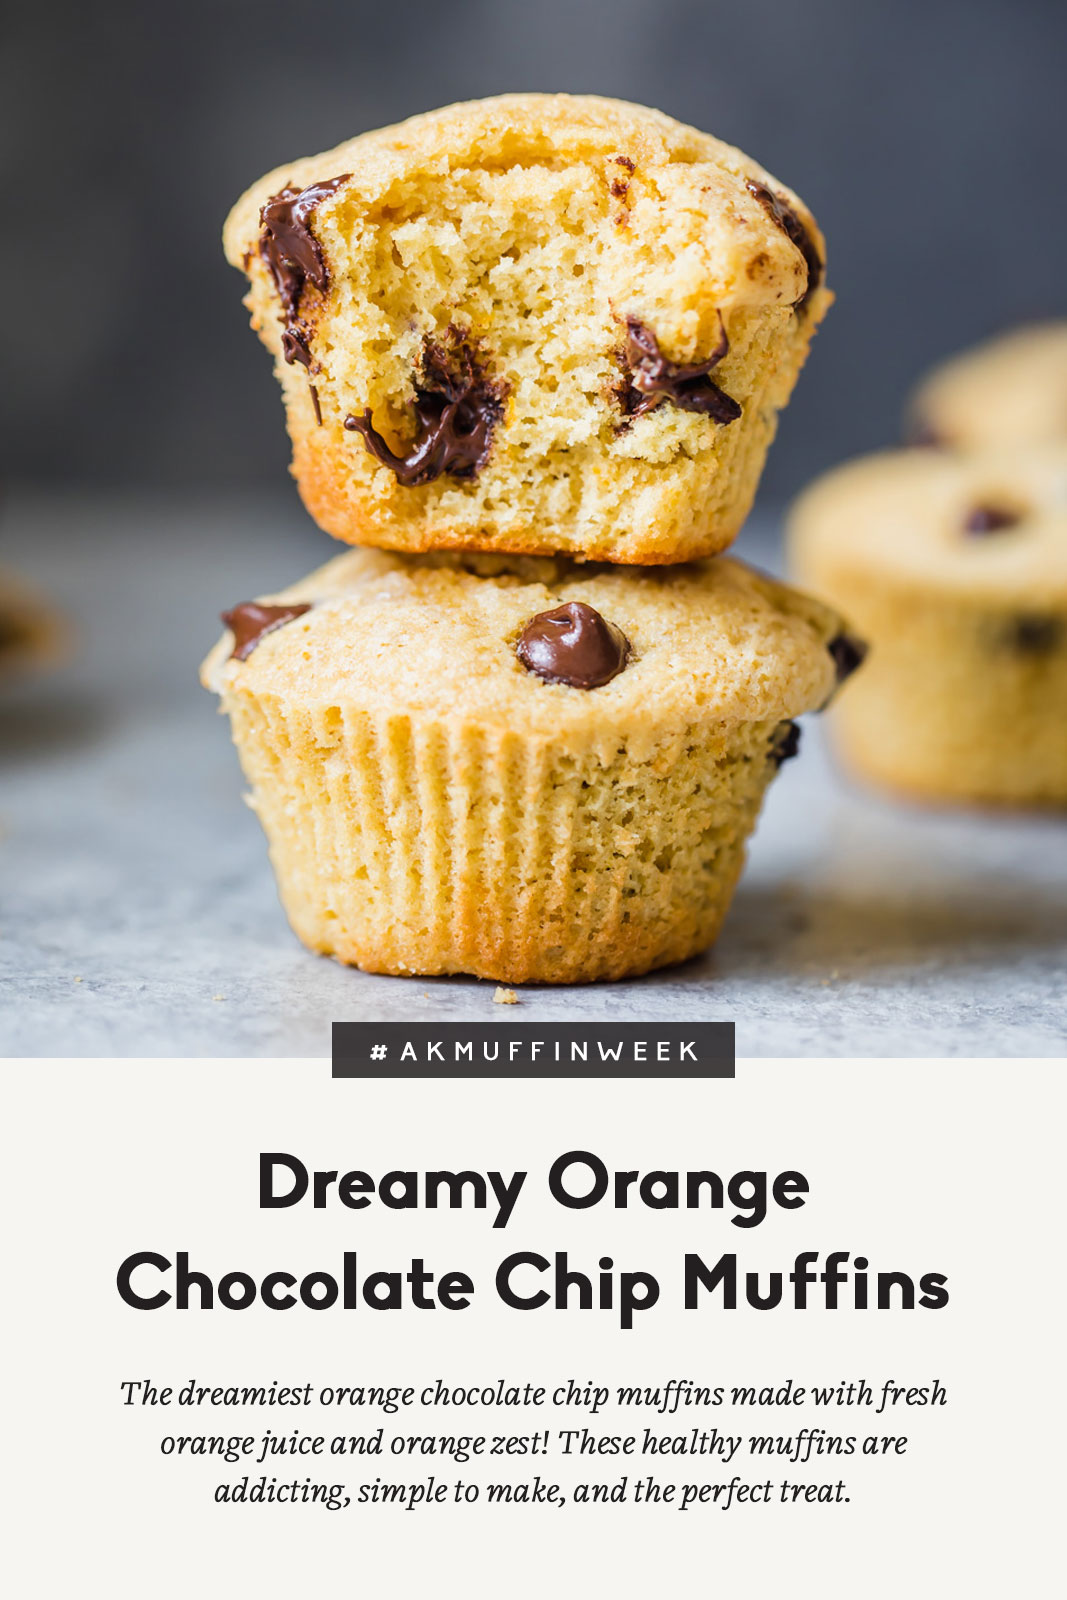 Two orange chocolate chip muffins stacked on top of one another with a title below